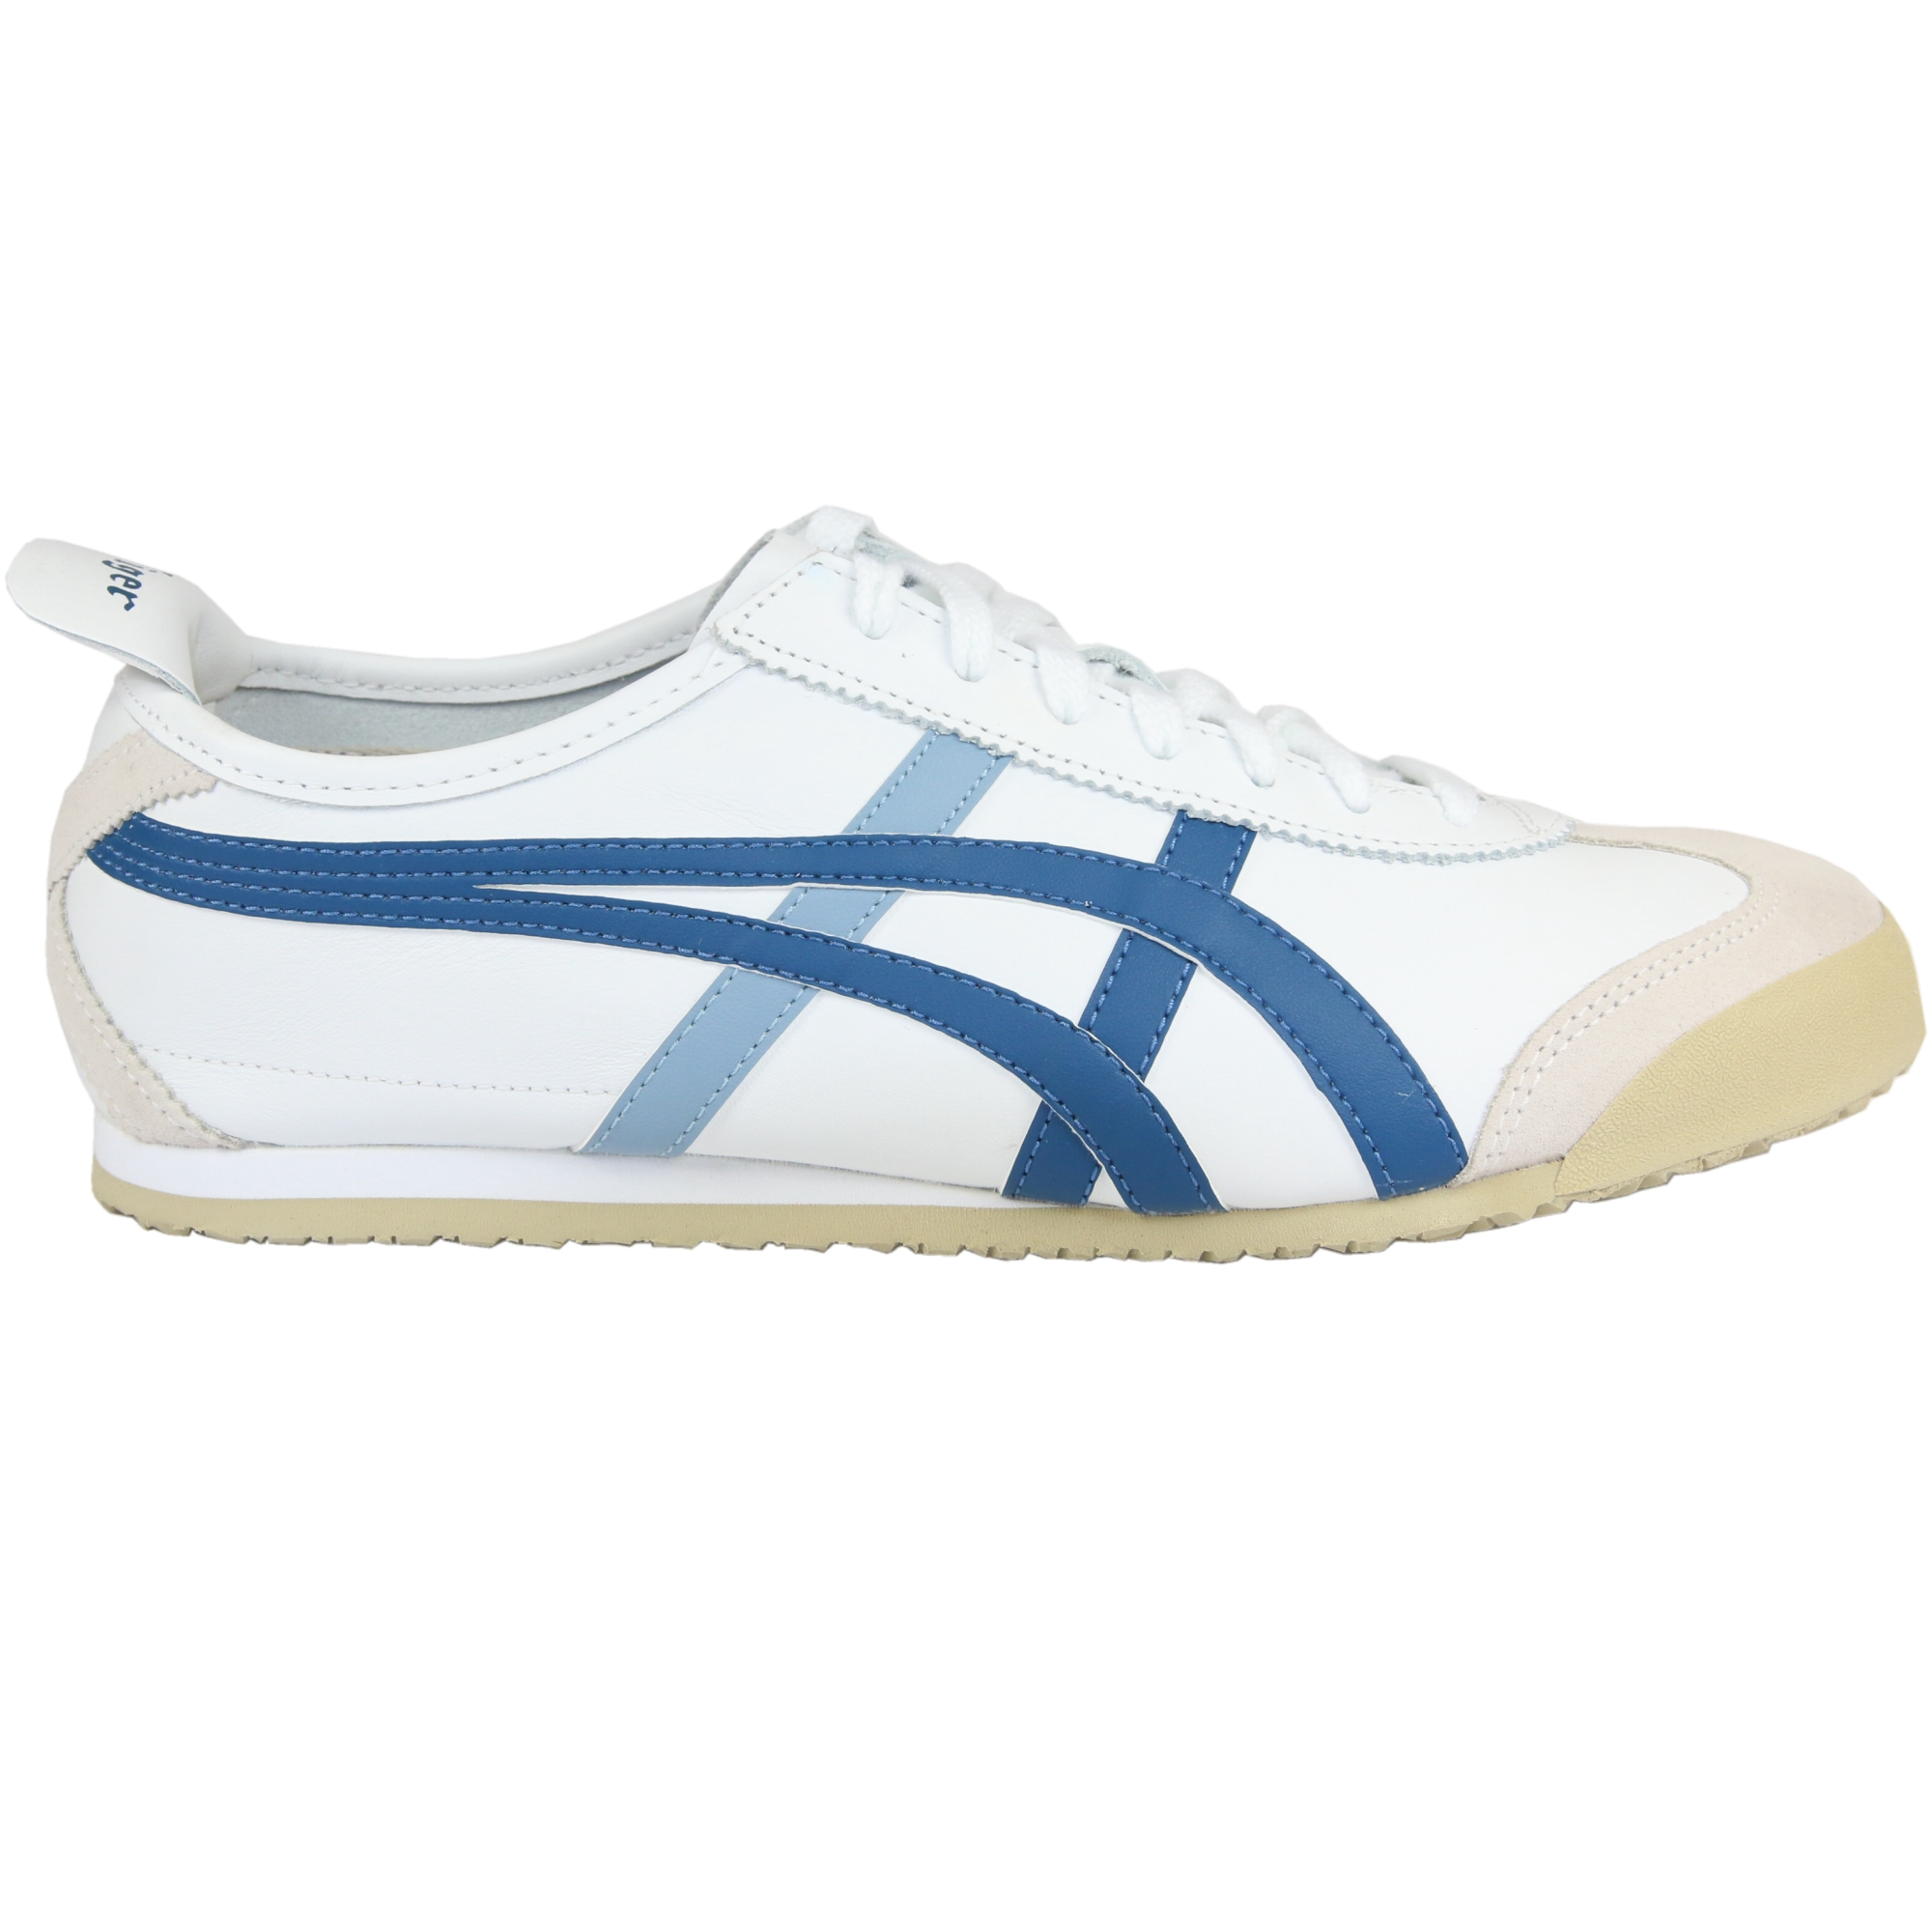 asics onitsuka tiger mexico 66 schuhe turnschuhe sneaker. Black Bedroom Furniture Sets. Home Design Ideas